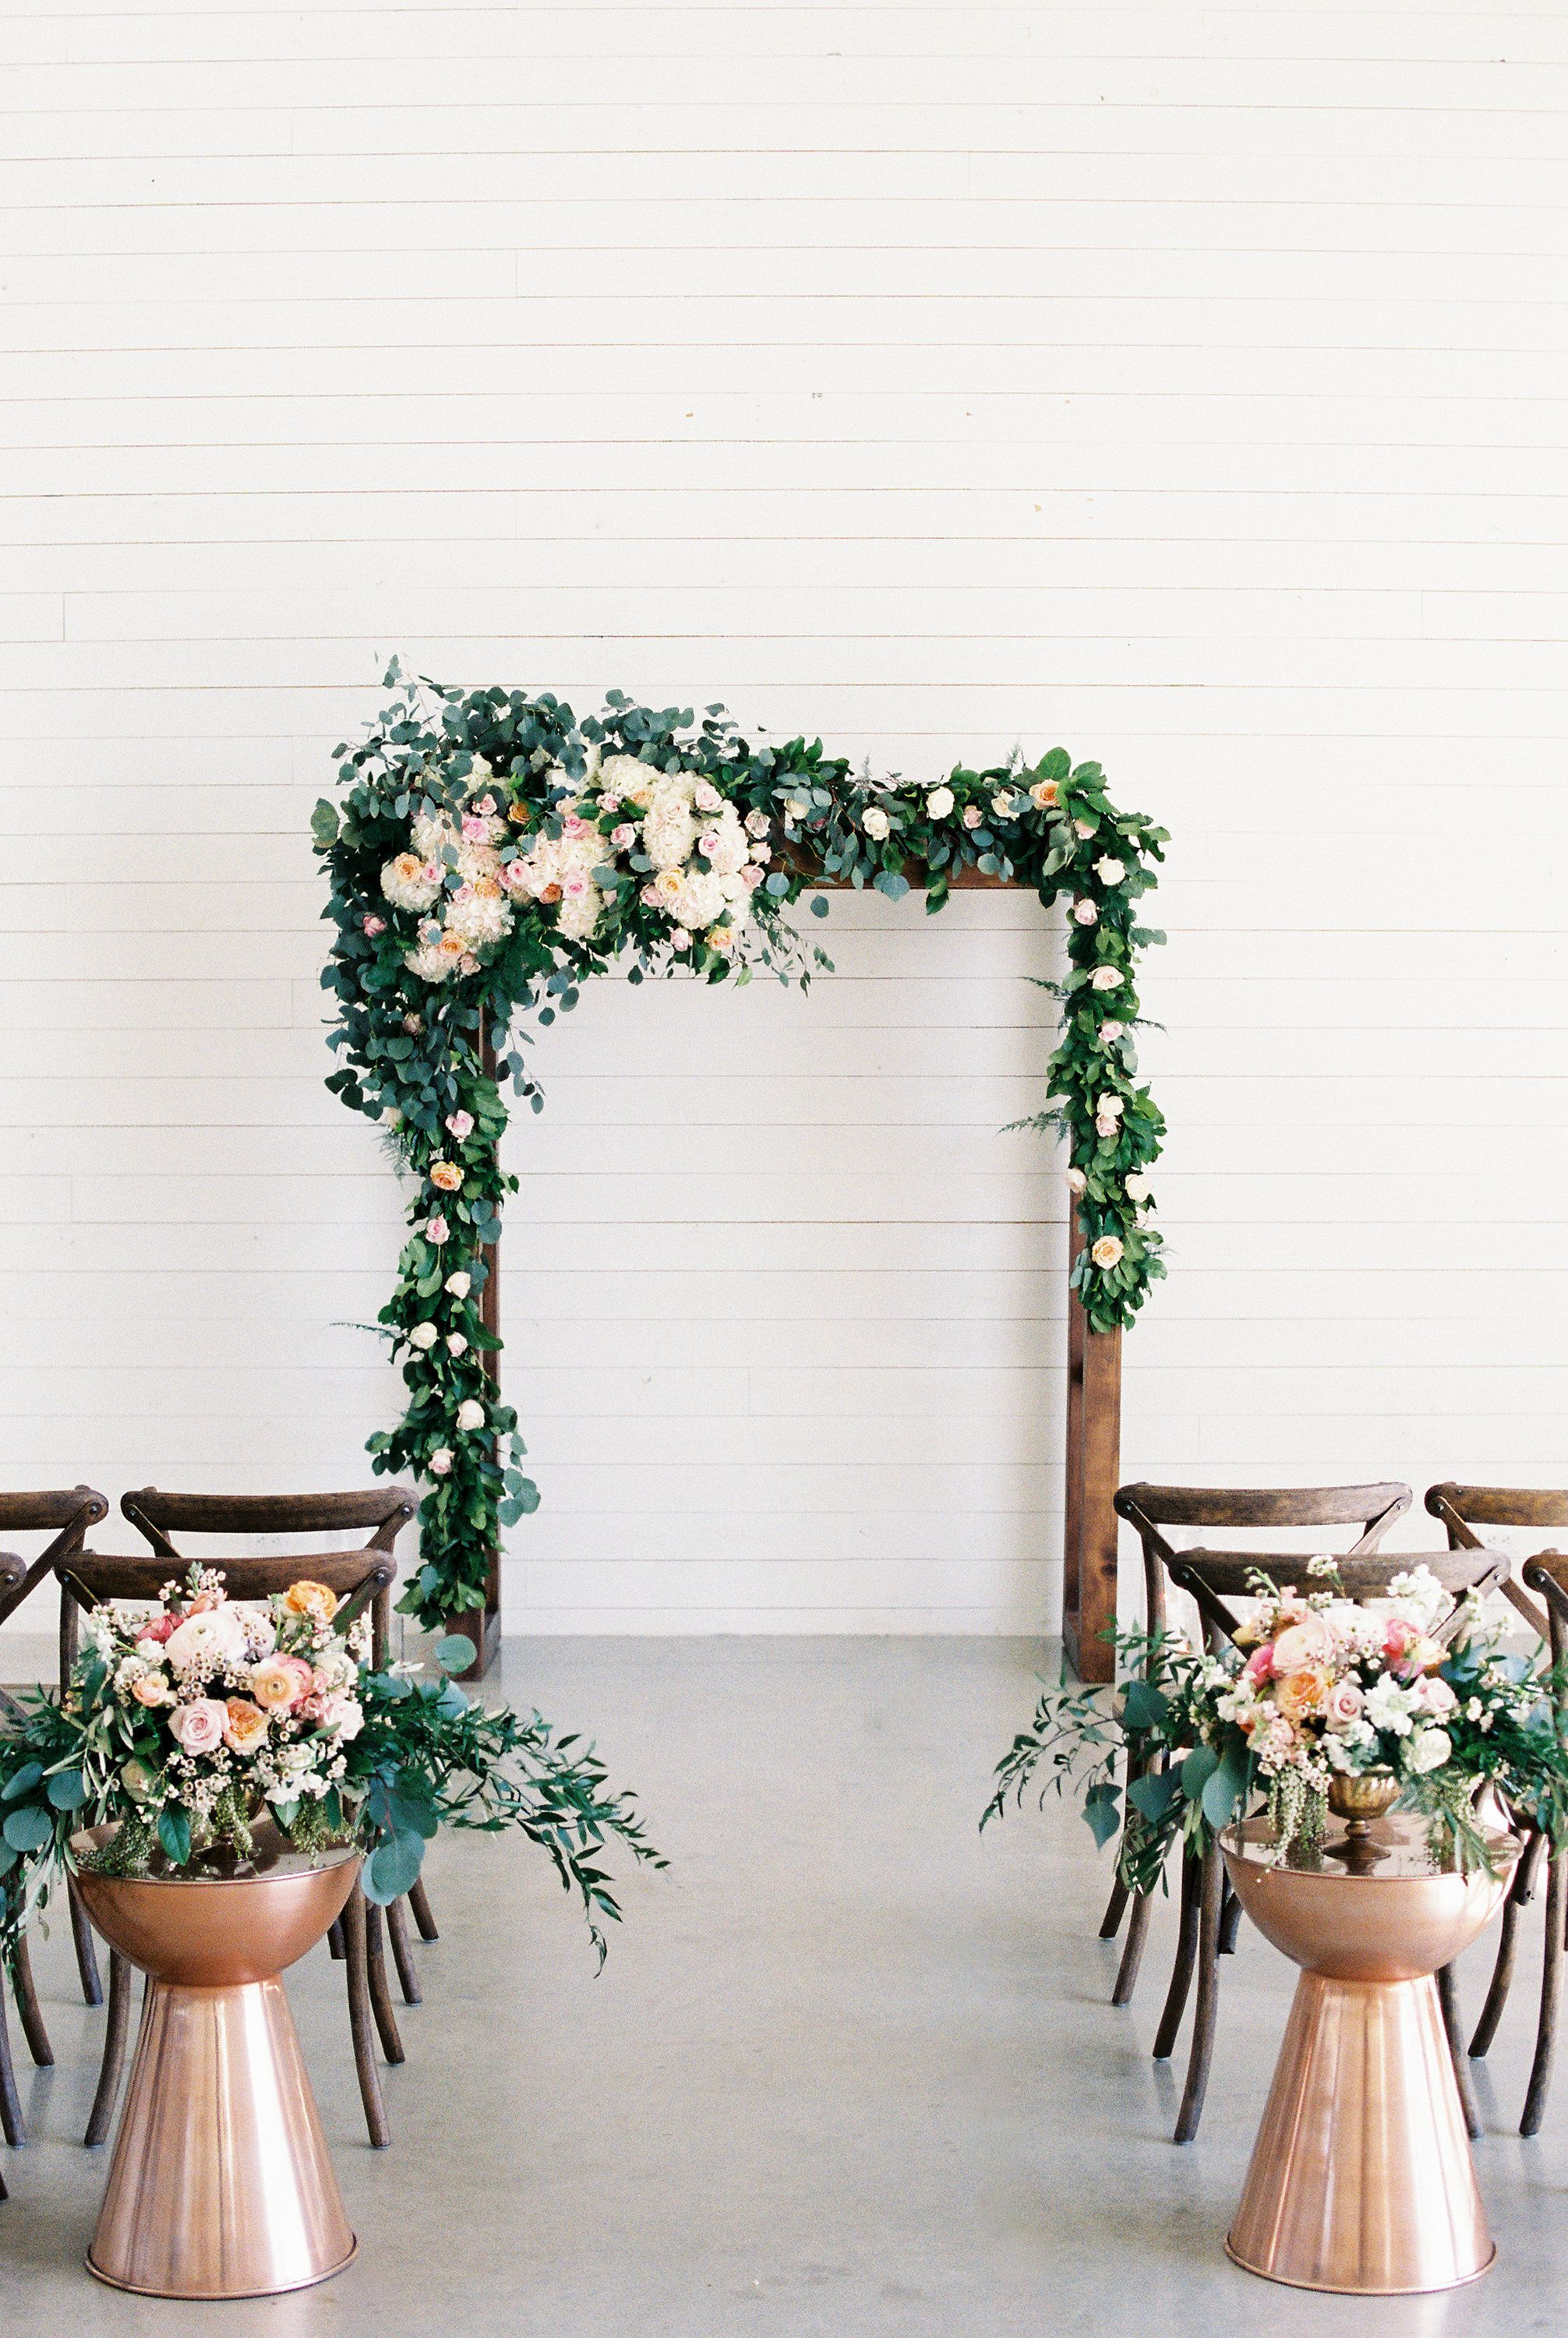 Wedding gate decoration ideas  Wedding ceremony design by Kate Rose Creative Group Emilie Anne